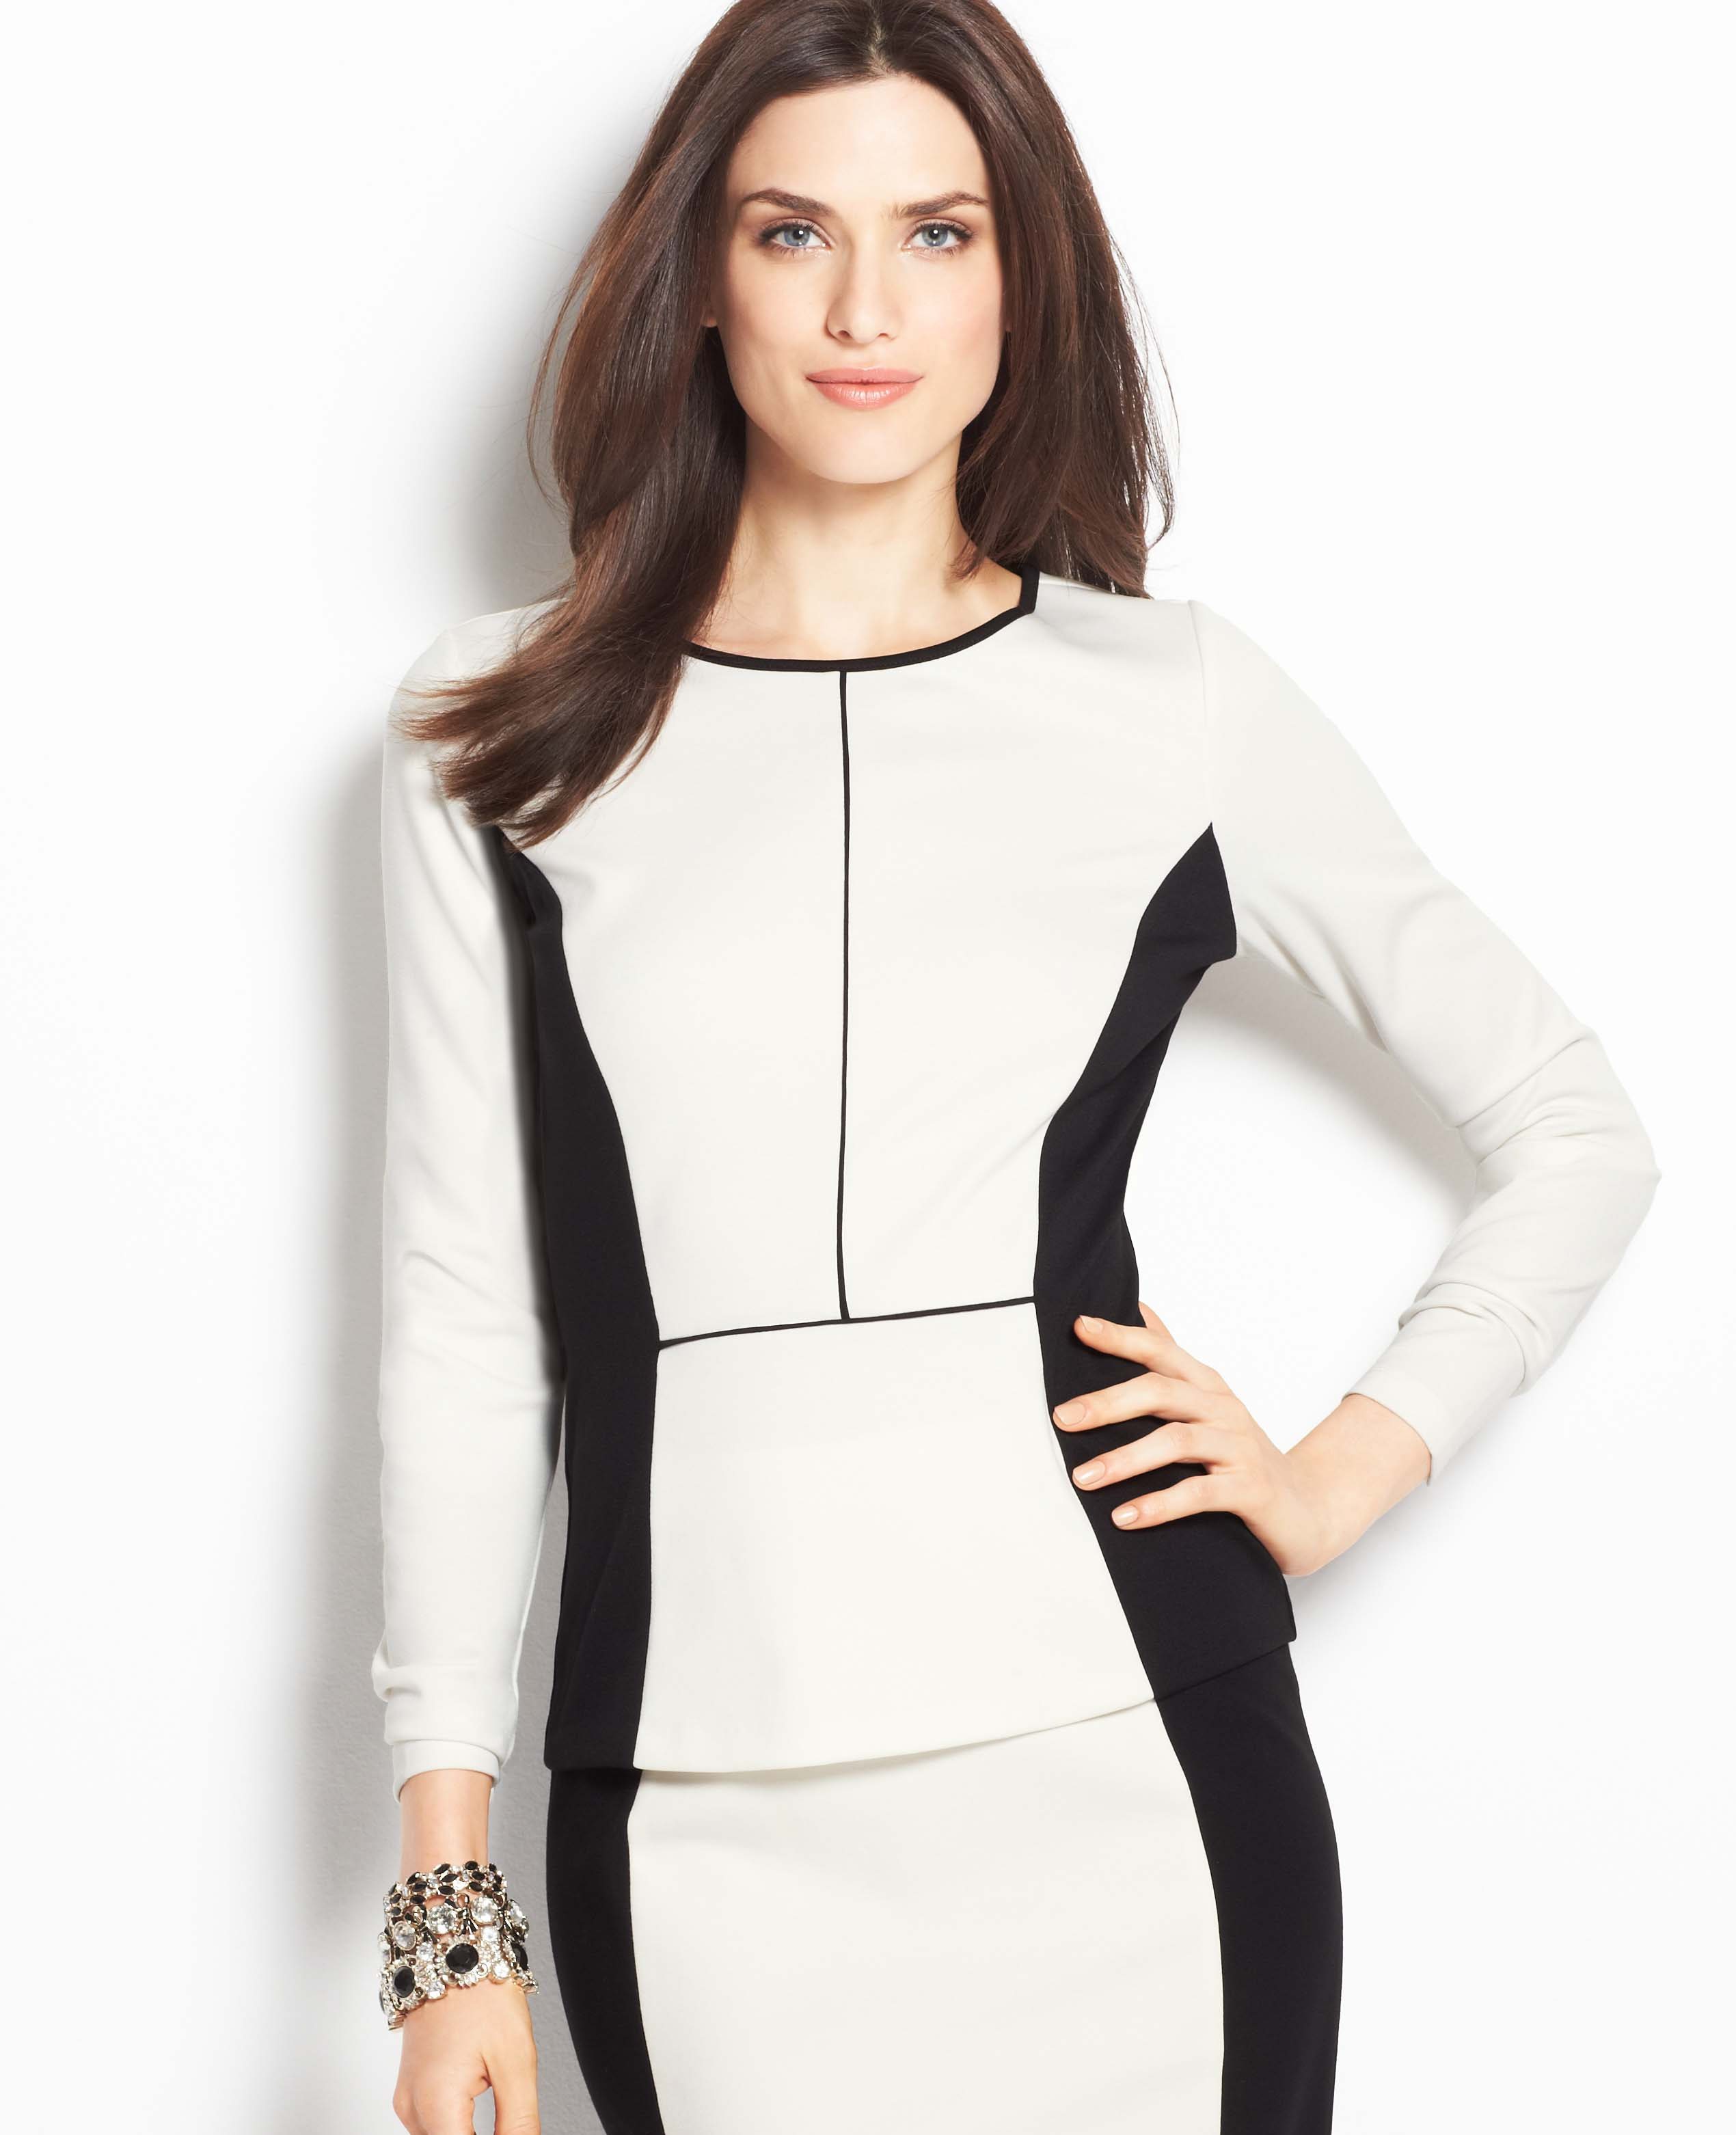 Find great deals on eBay for long sleeve peplum dresses. Shop with confidence.